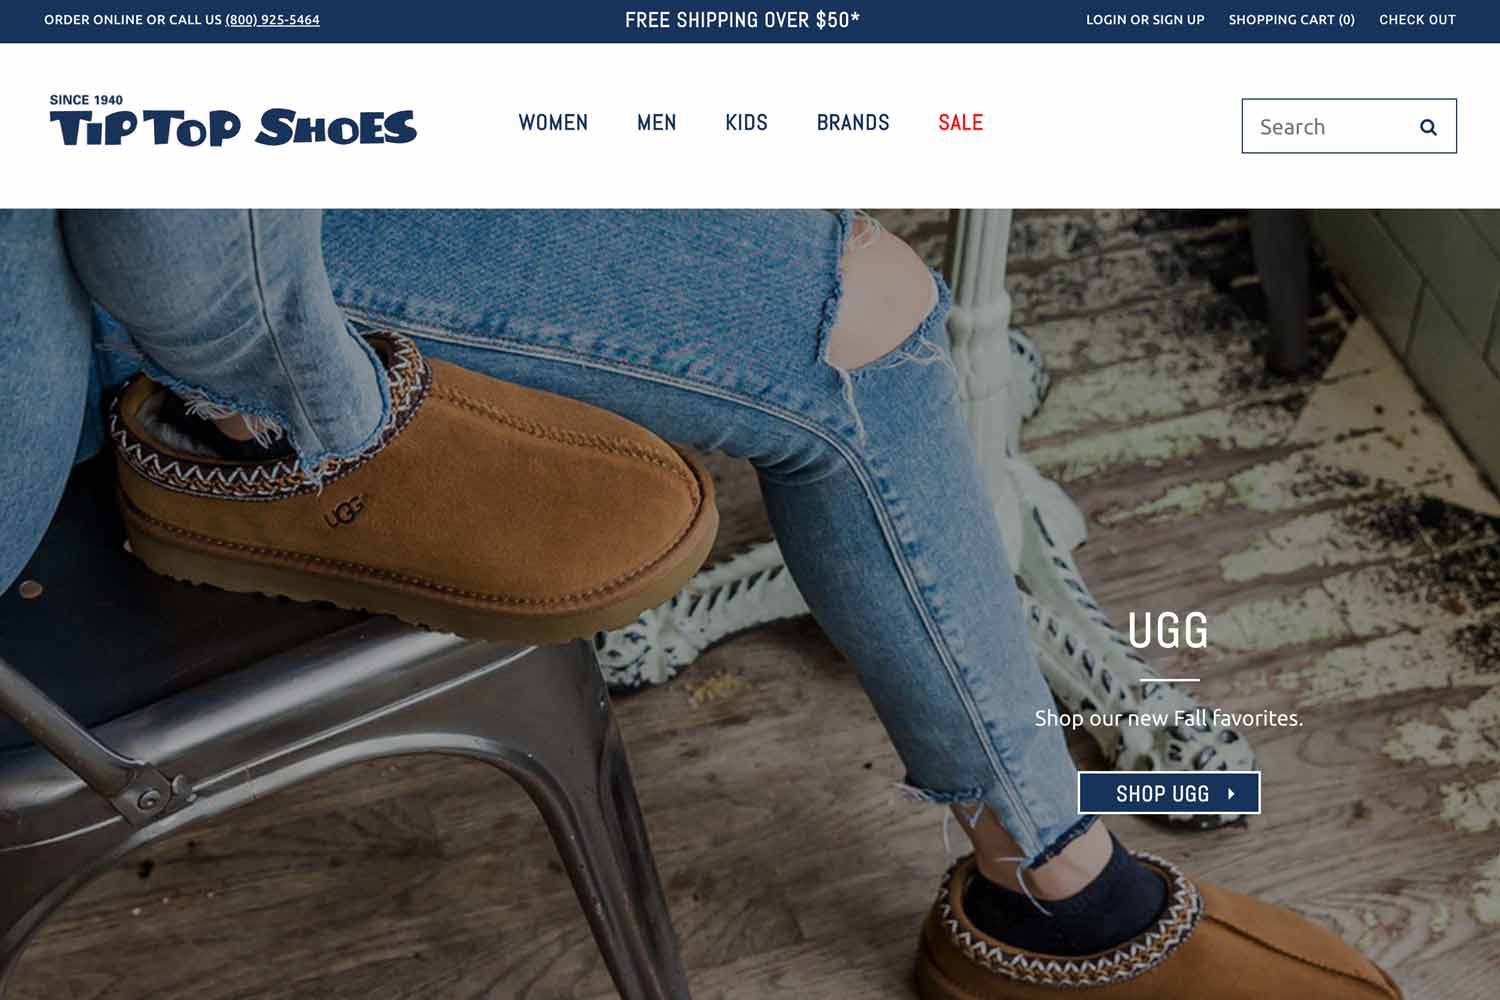 Tip Top Shoes homepage design